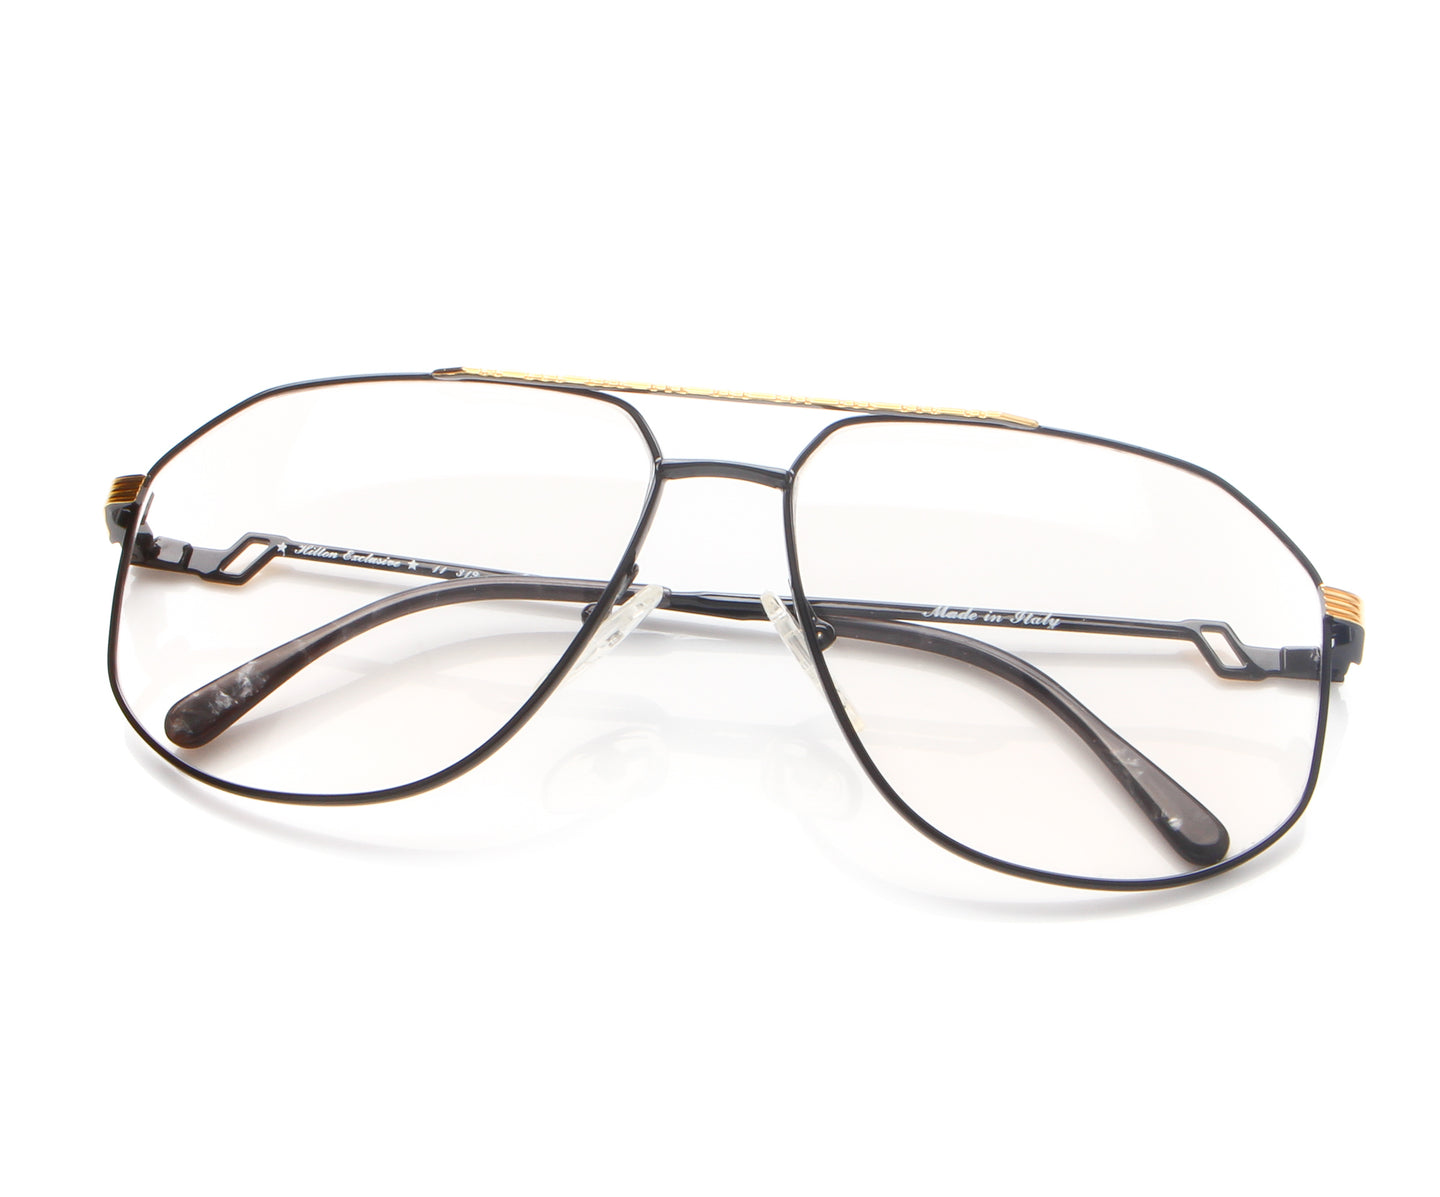 Vintage Hilton Exclusive 11 319 20KT GP Thumb, Hilton , glasses frames, eyeglasses online, eyeglass frames, mens glasses, womens glasses, buy glasses online, designer eyeglasses, vintage sunglasses, retro sunglasses, vintage glasses, sunglass, eyeglass, glasses, lens, vintage frames company, vf